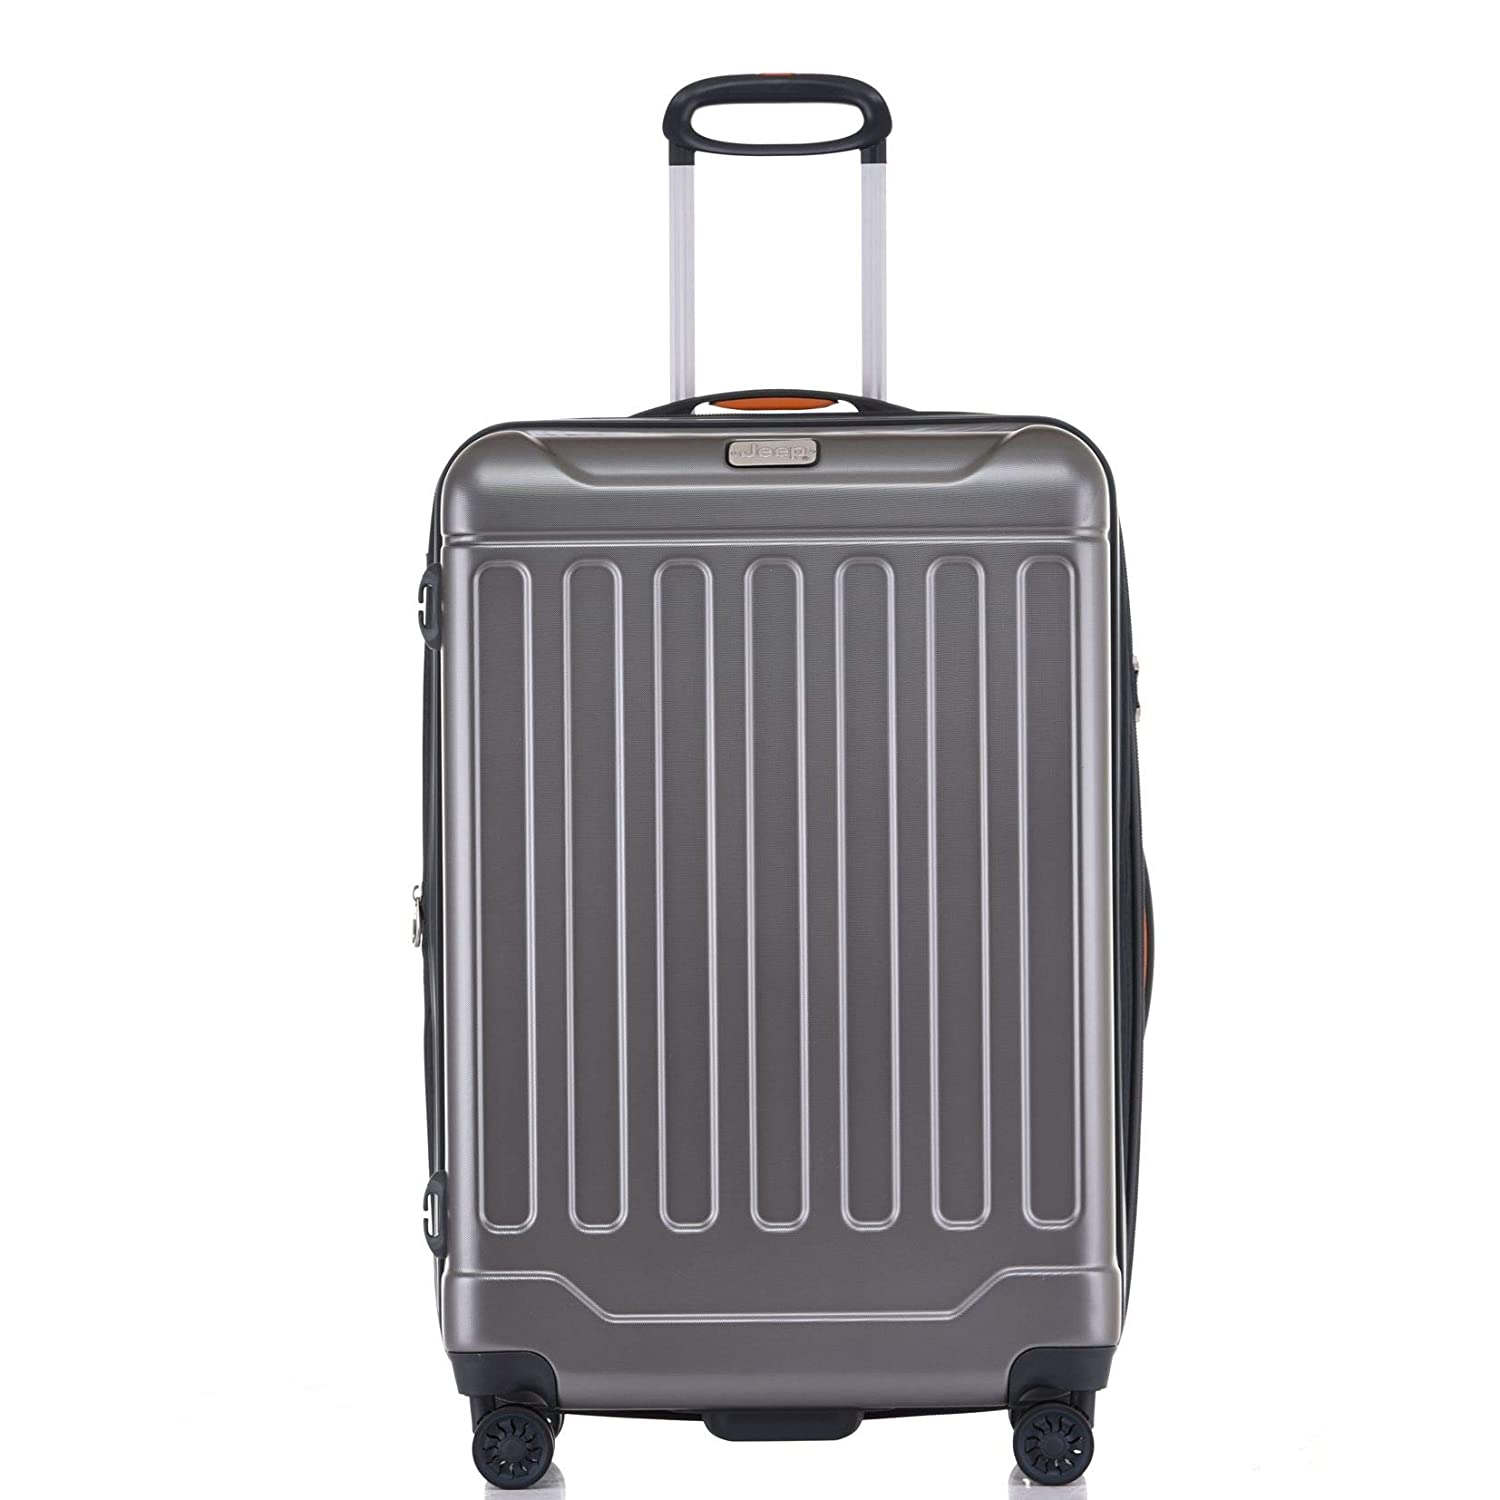 388993d22a Jeep ABS Hard Case 3 Piece Suitcase Trolley Tourist Bag with Spinner Wheels  (Dark Grey, 20, 25.2, 29-inches): Amazon.in: Bags, Wallets & Luggage